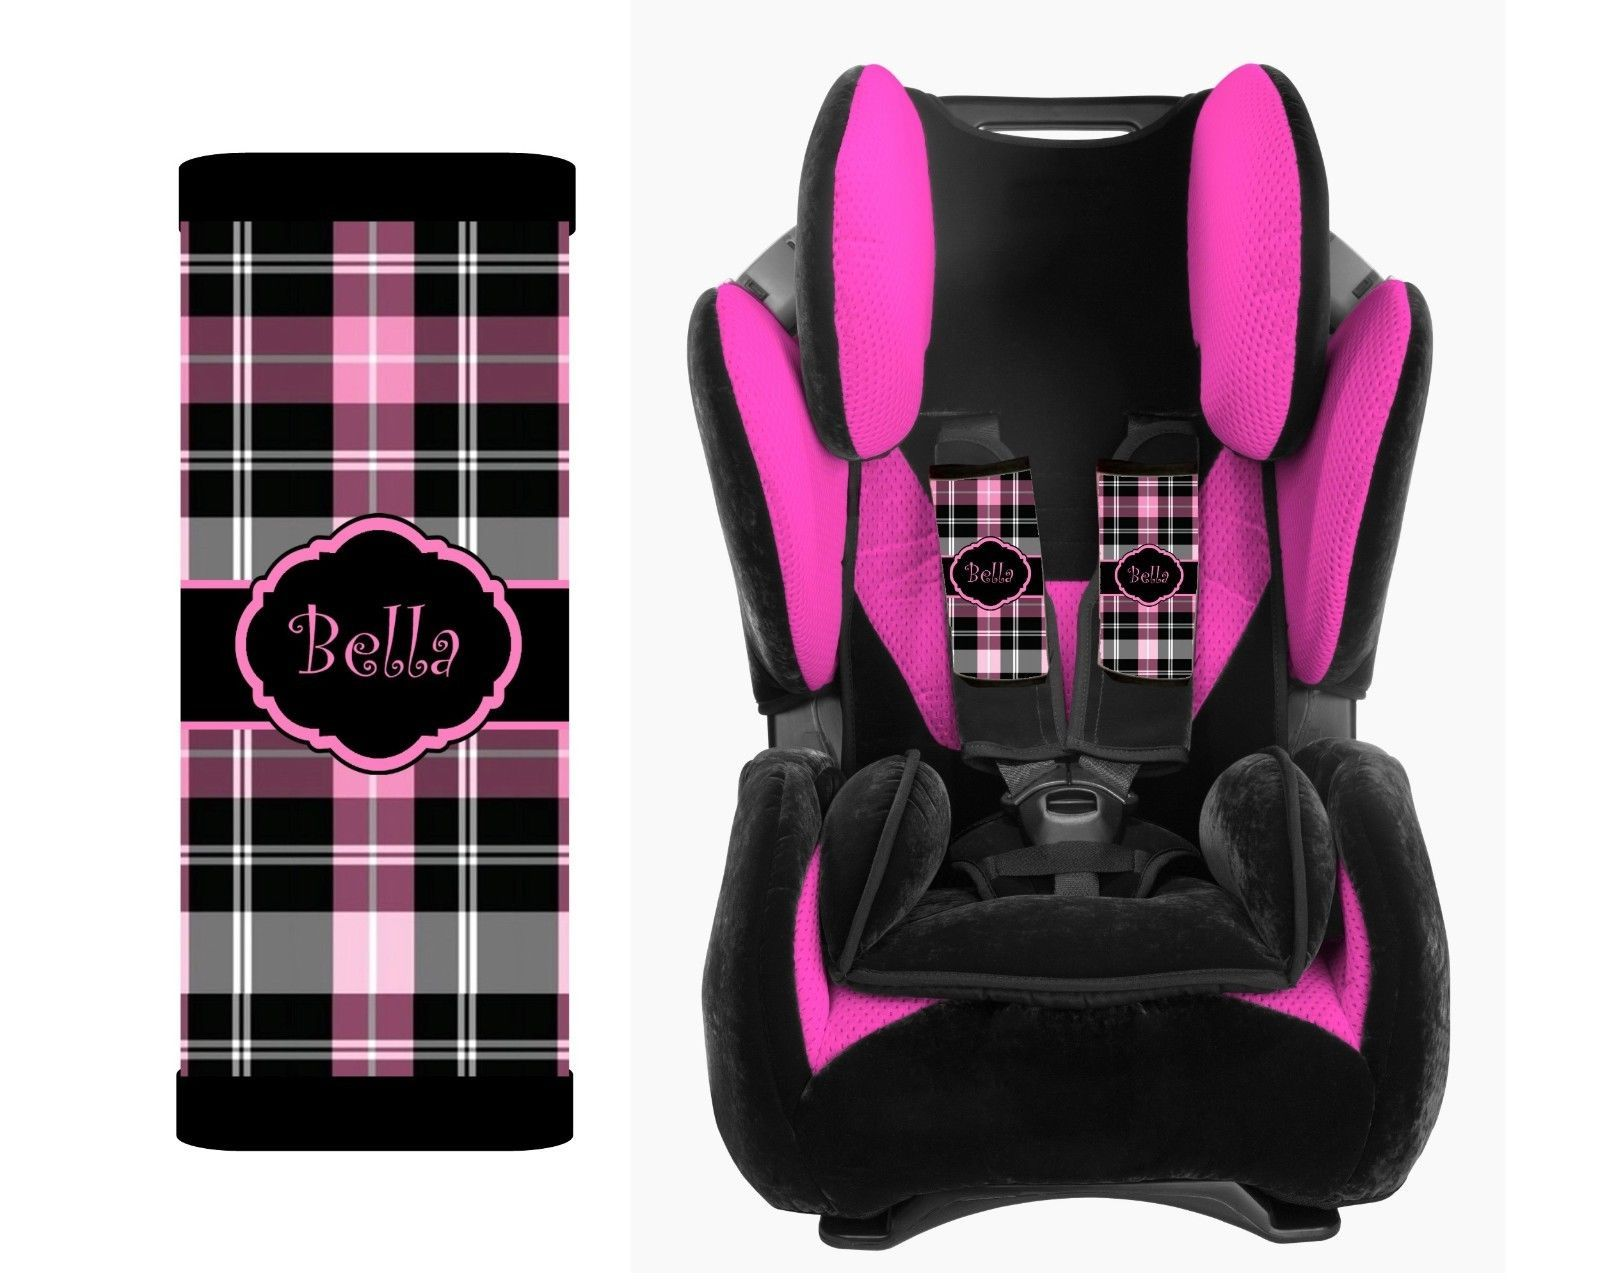 personalized baby toddler car seat strap covers black hot pink plaid e1125165022660869m. Black Bedroom Furniture Sets. Home Design Ideas